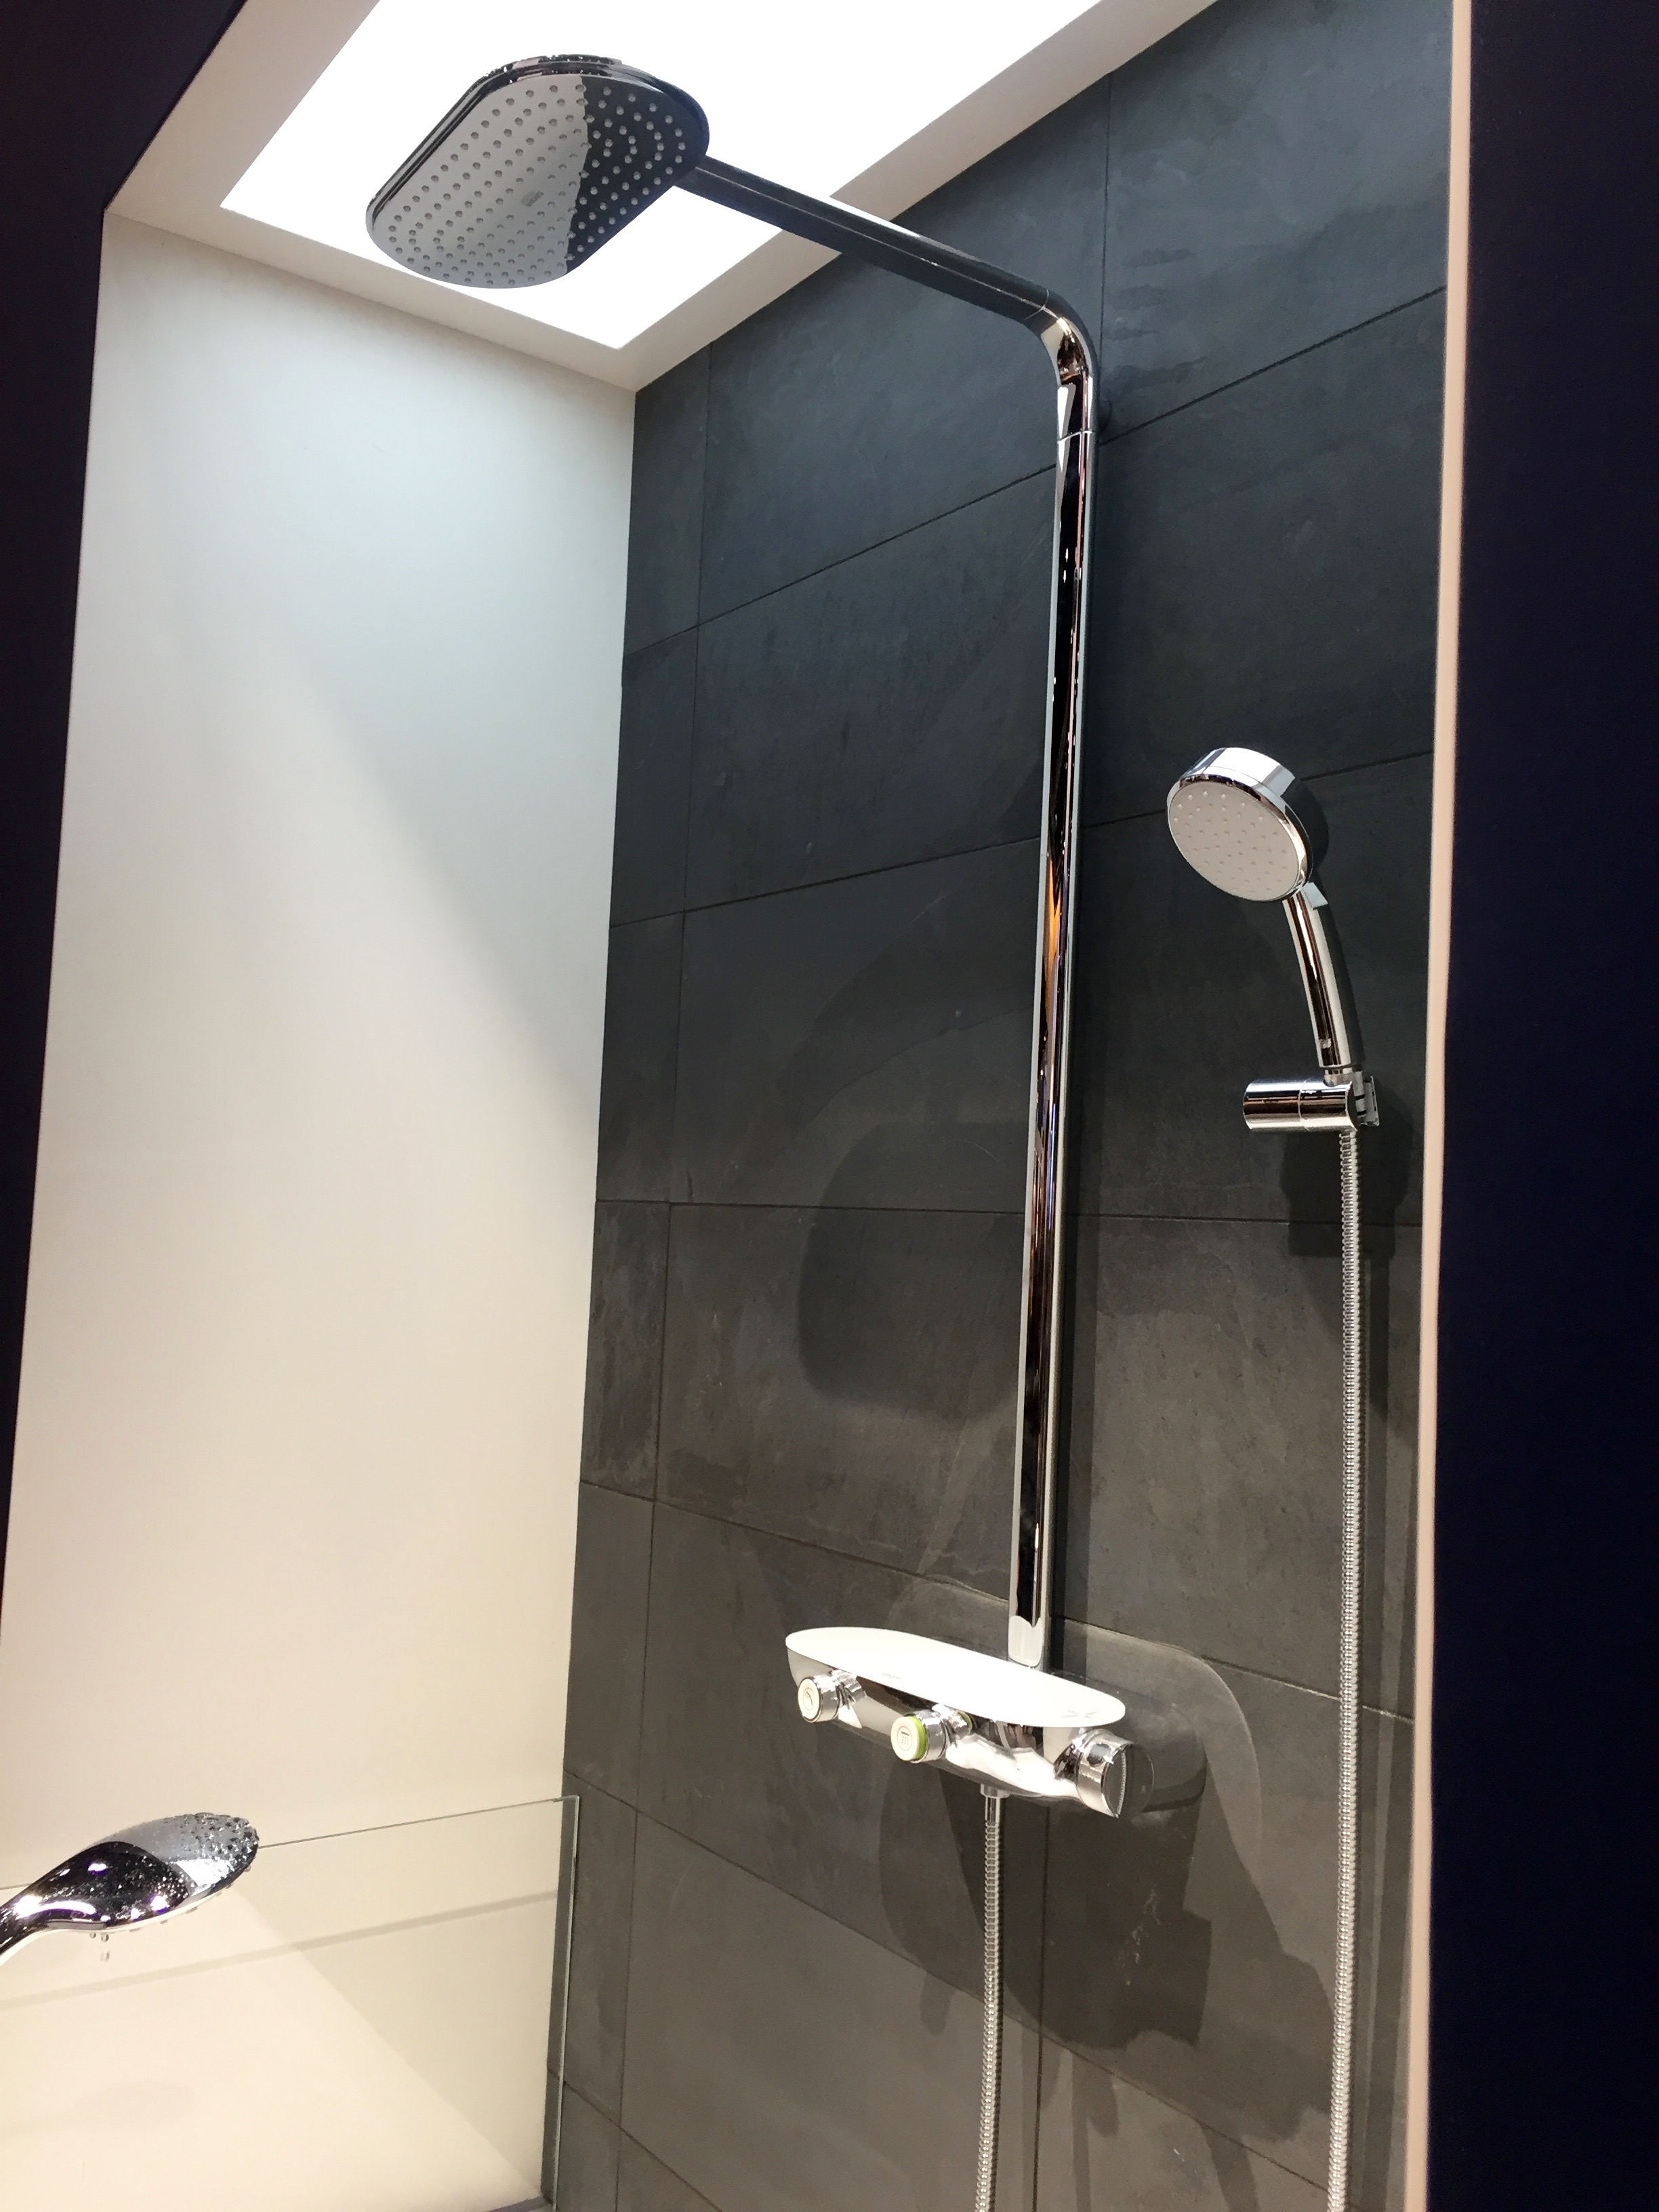 BlogTourKBIS – Visiting with Grohe and DXV at the Kitchen & Bath ...